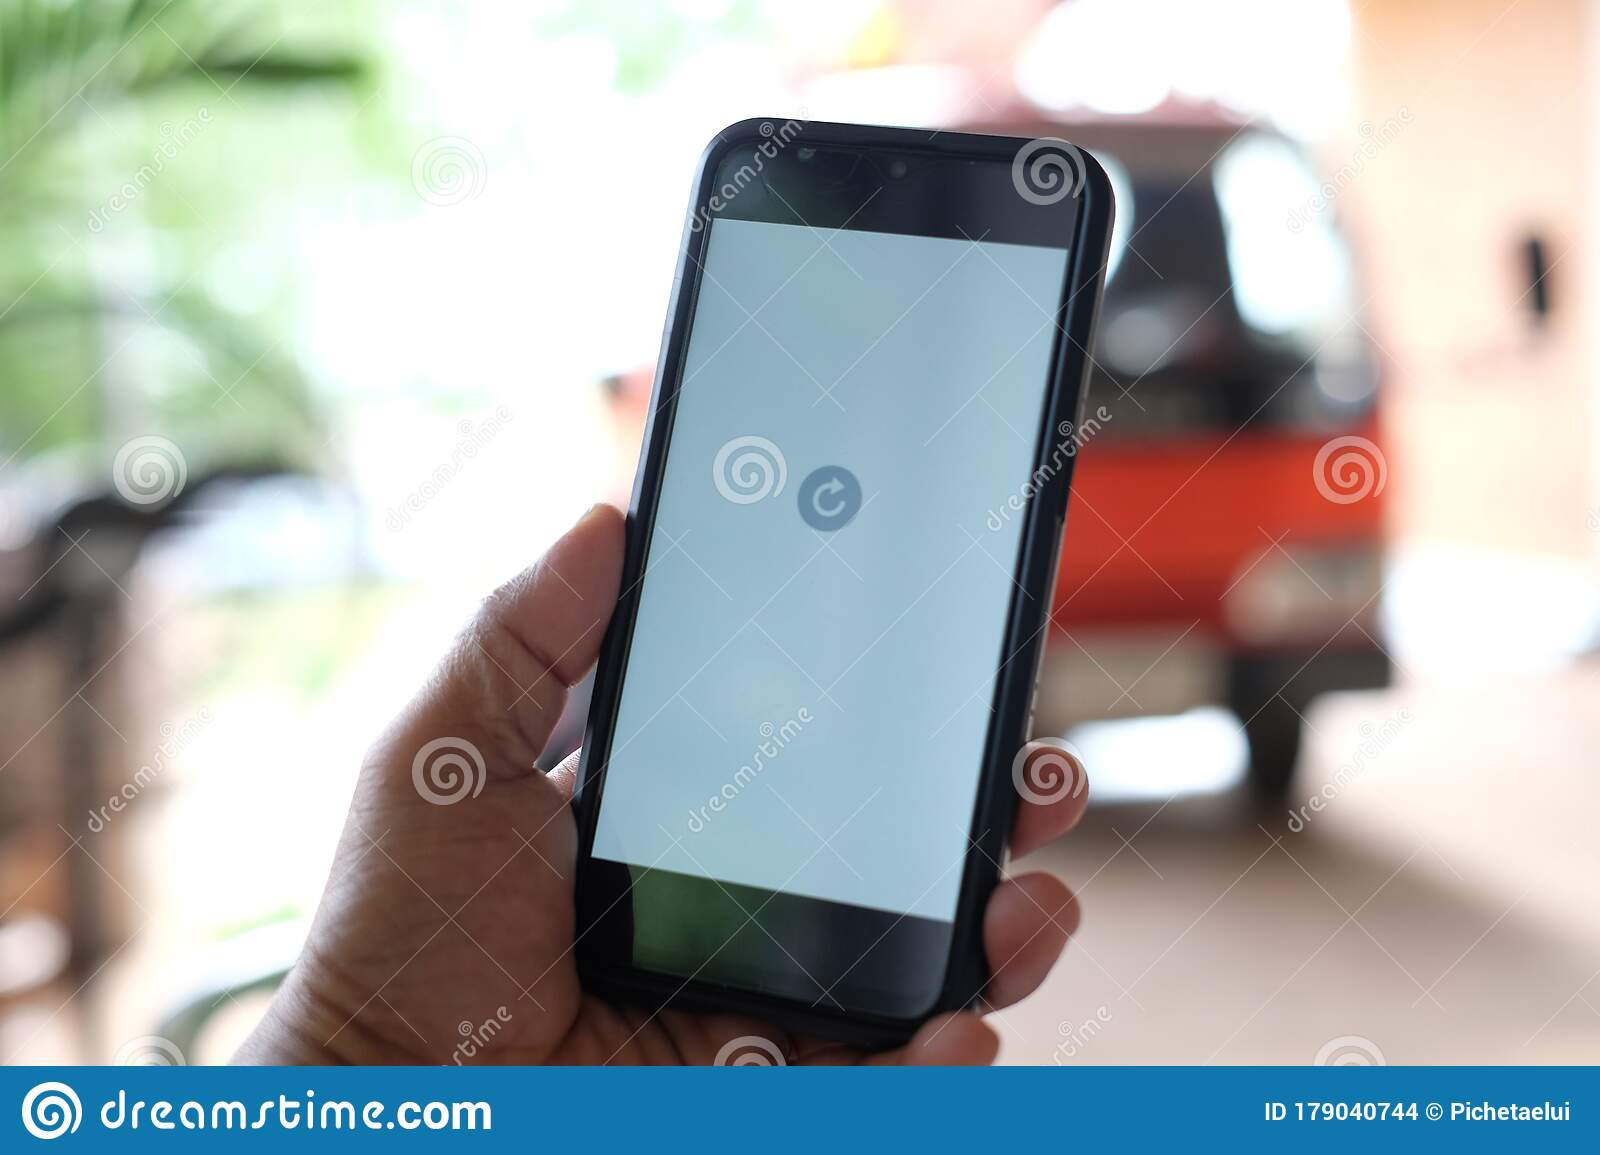 Mobile Phones Without Internet Connection Are Not Easy To Use. Stock Photo - Image of mobile